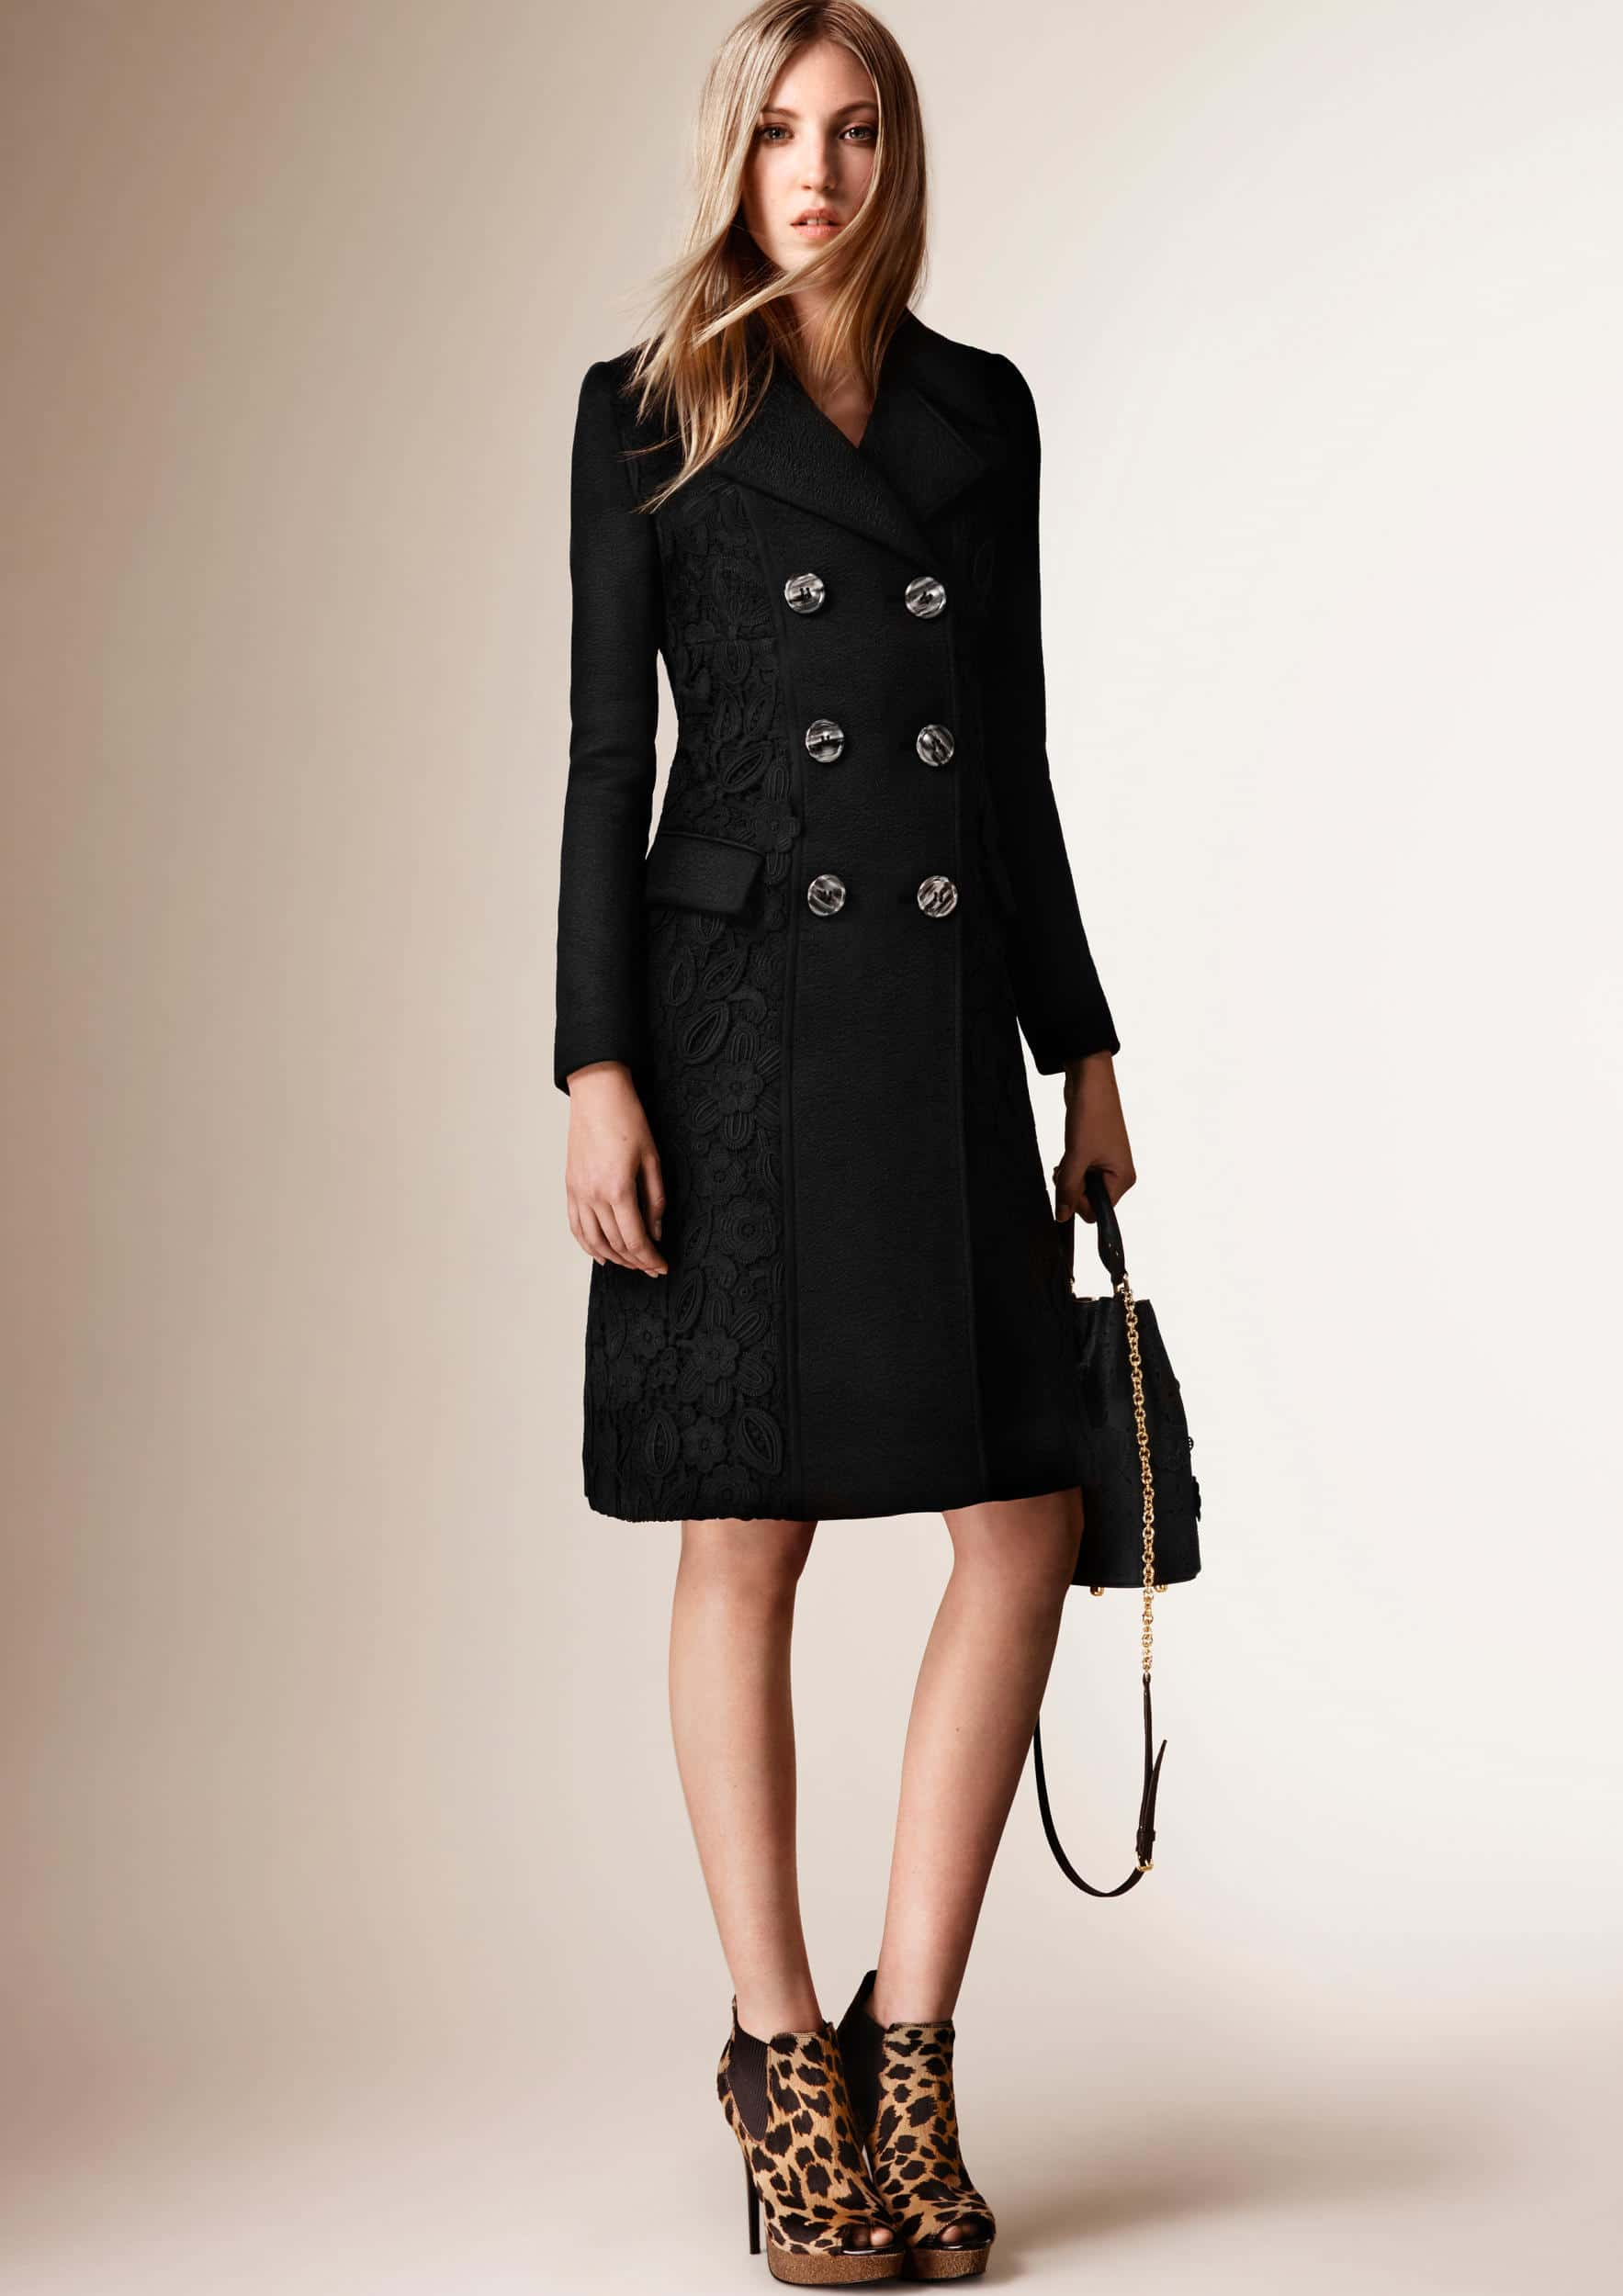 burberry-resort-collection-2016-15